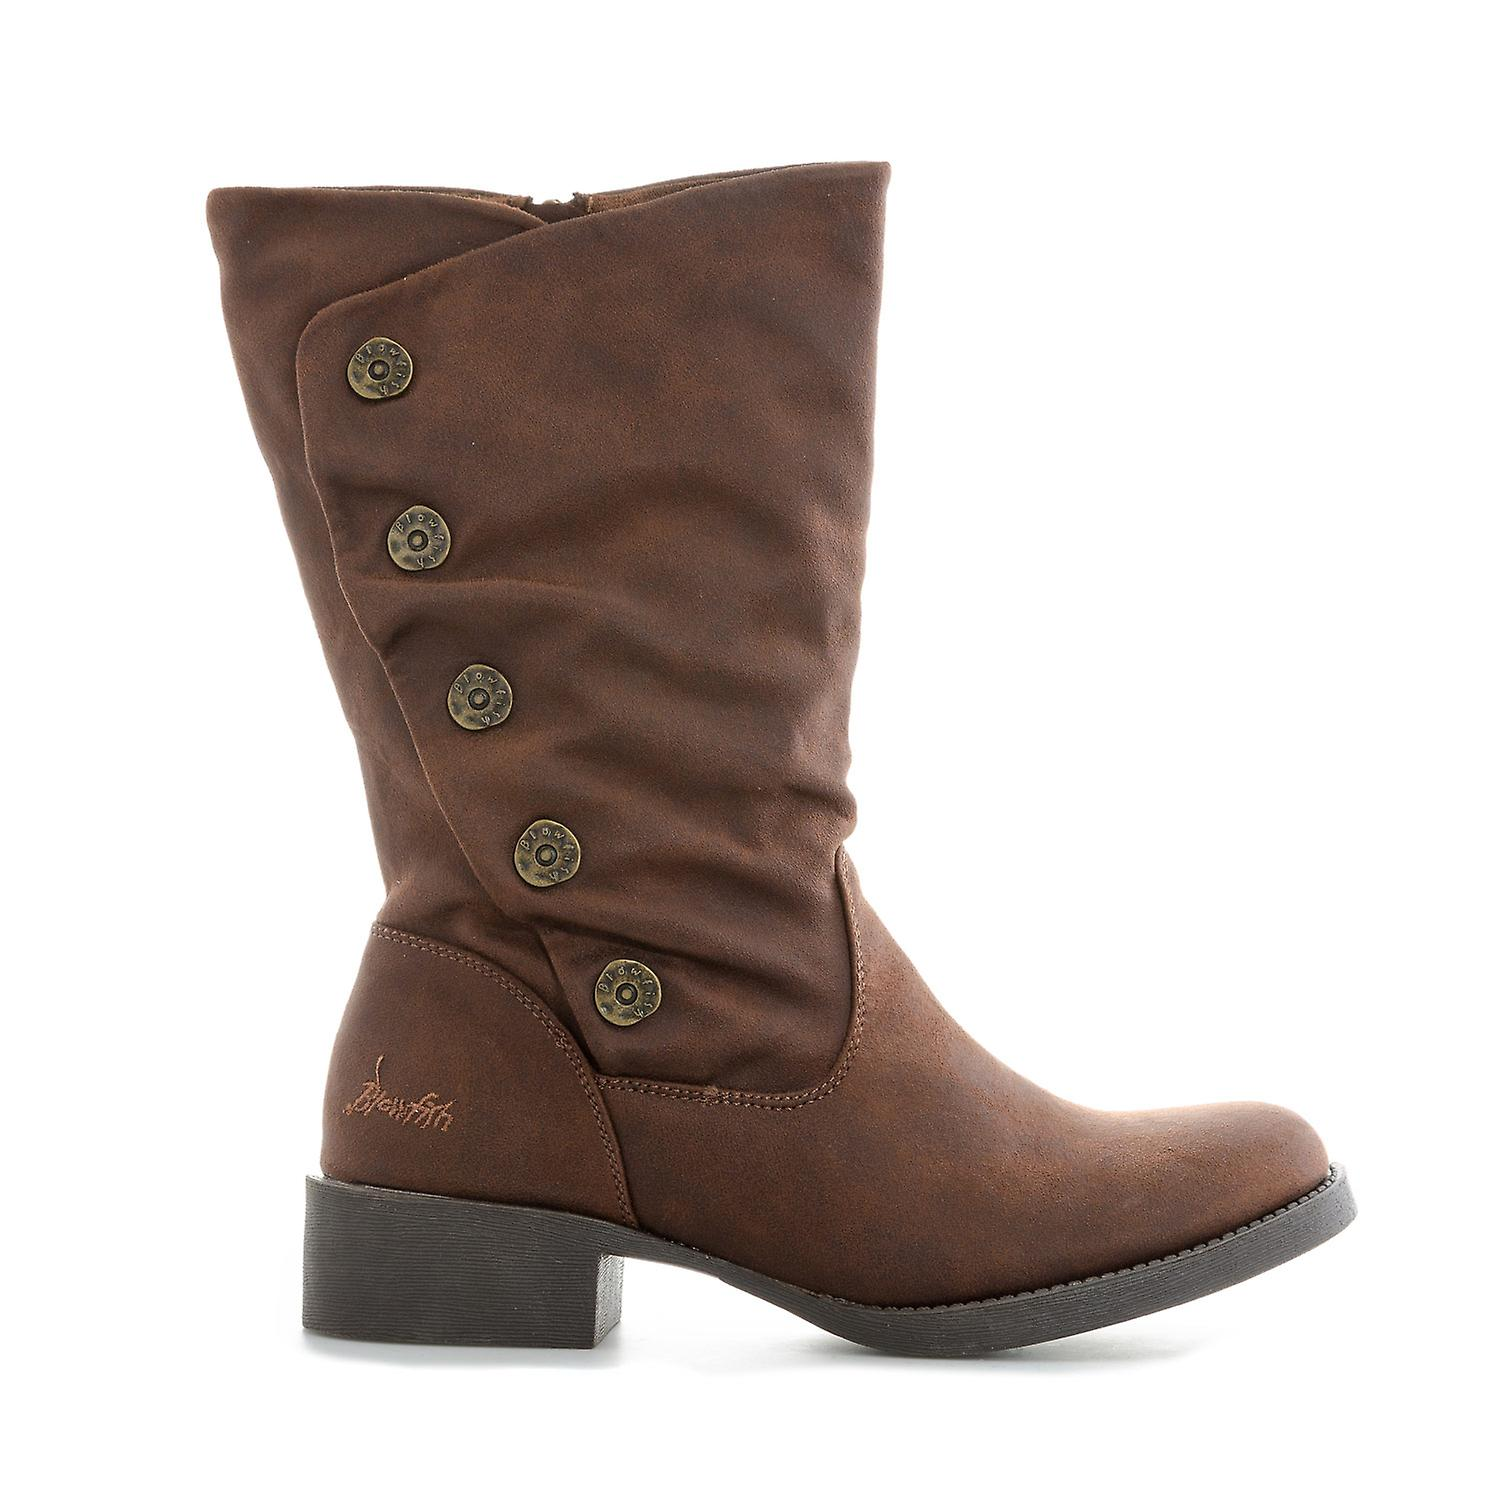 Womens Blowfish Malibu Keeda Boots In Tobacco